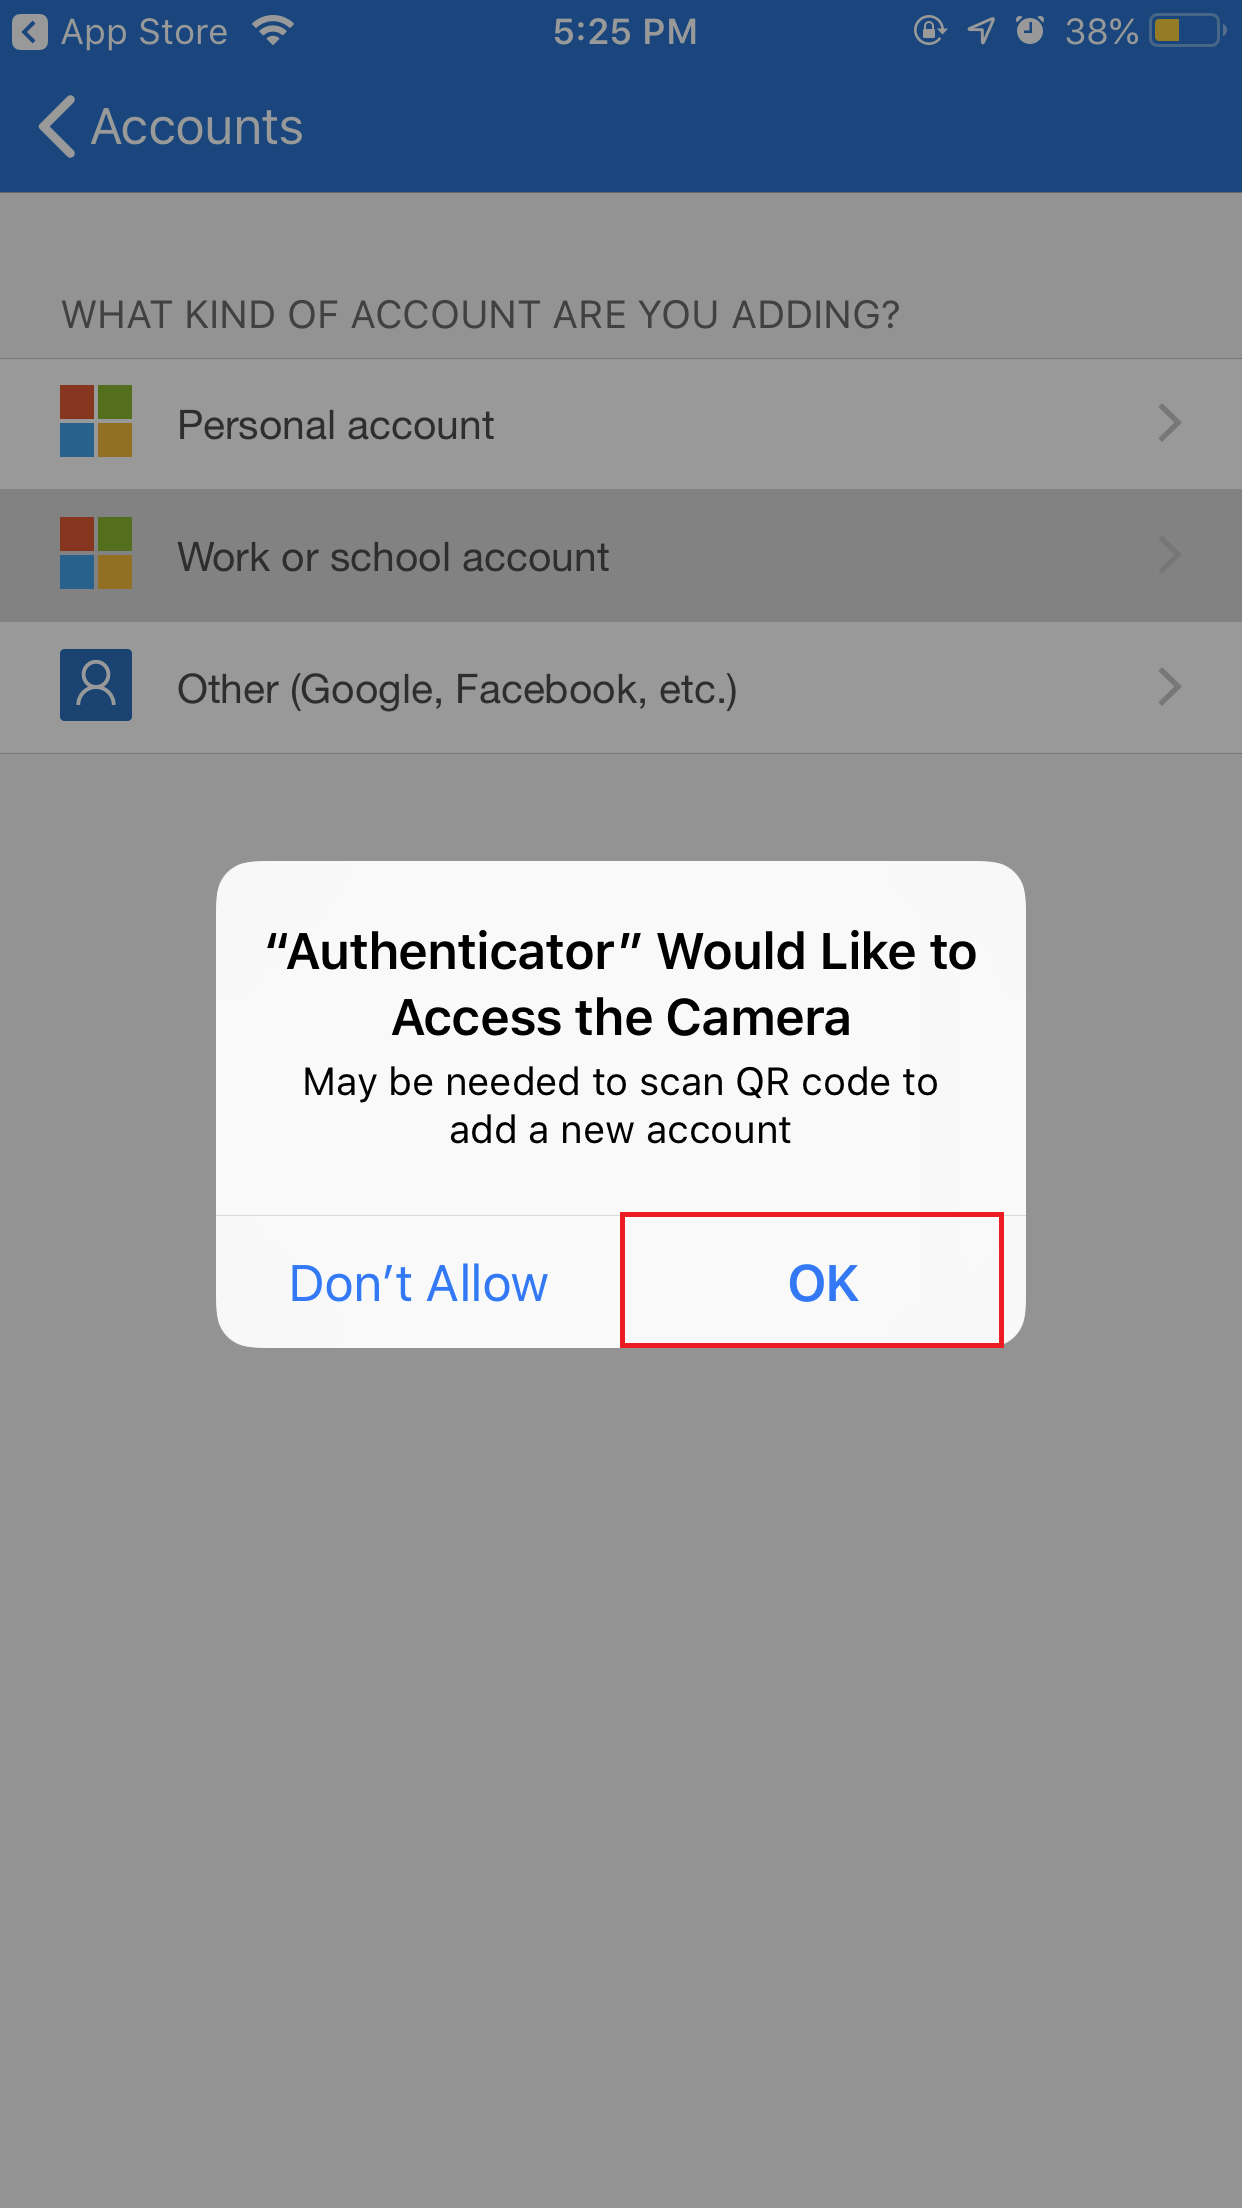 Click on OK to allow Authenticator to acces the Camera